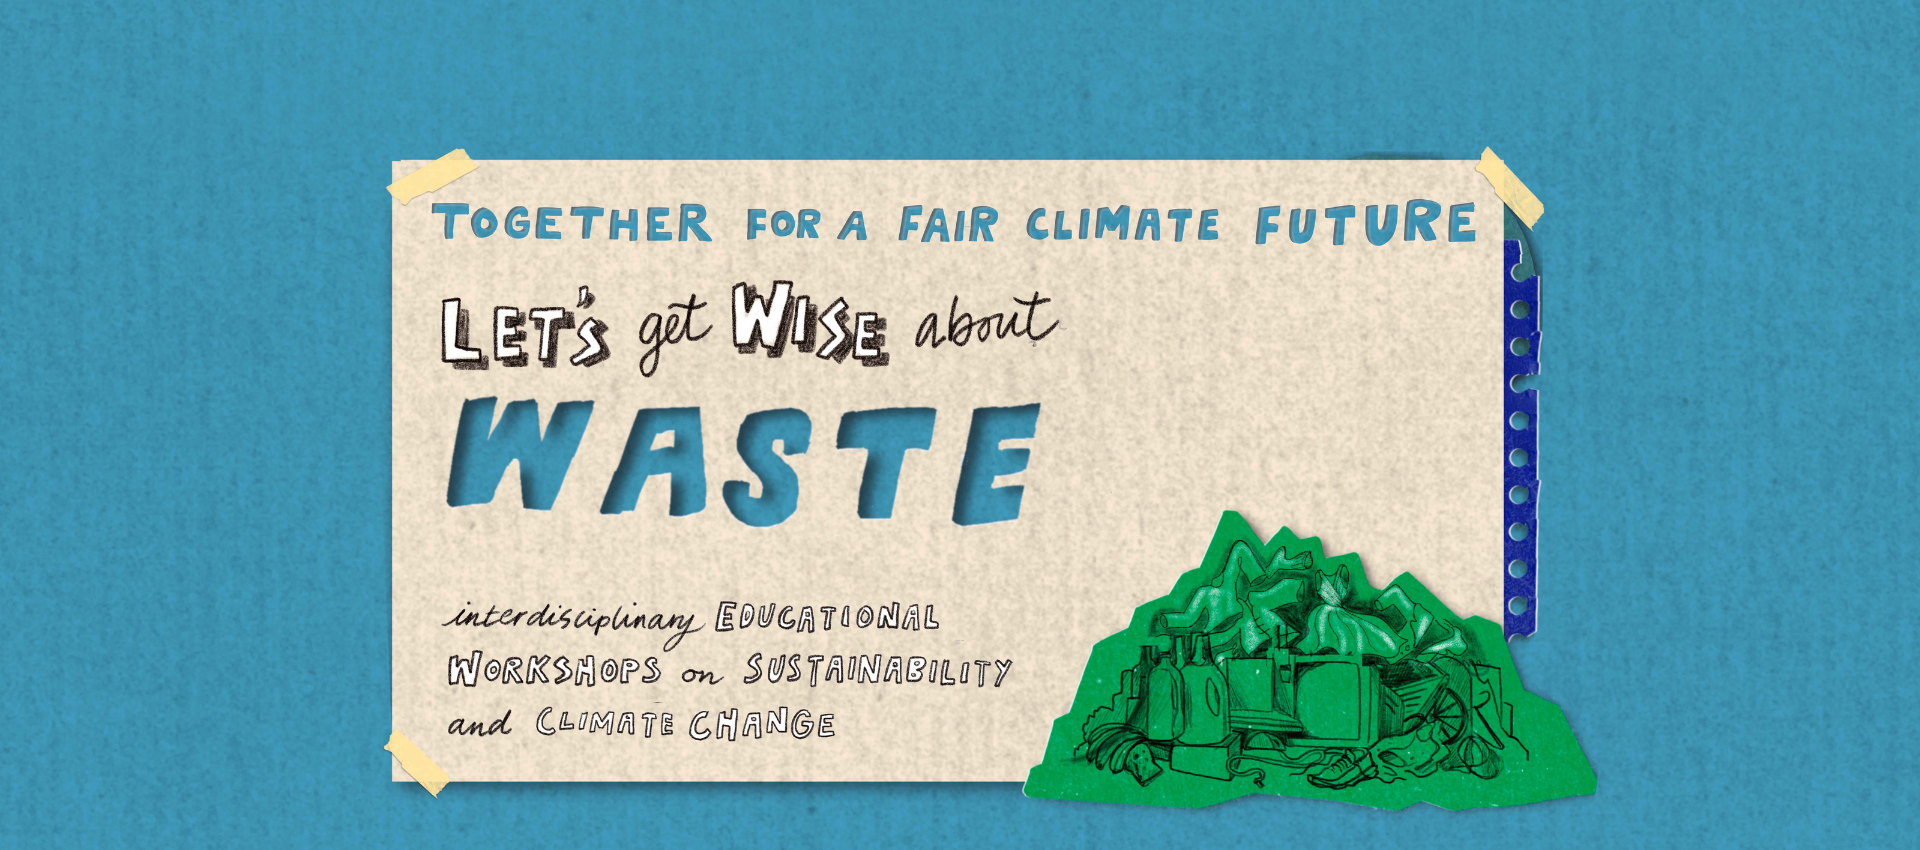 Let's get wise about waste